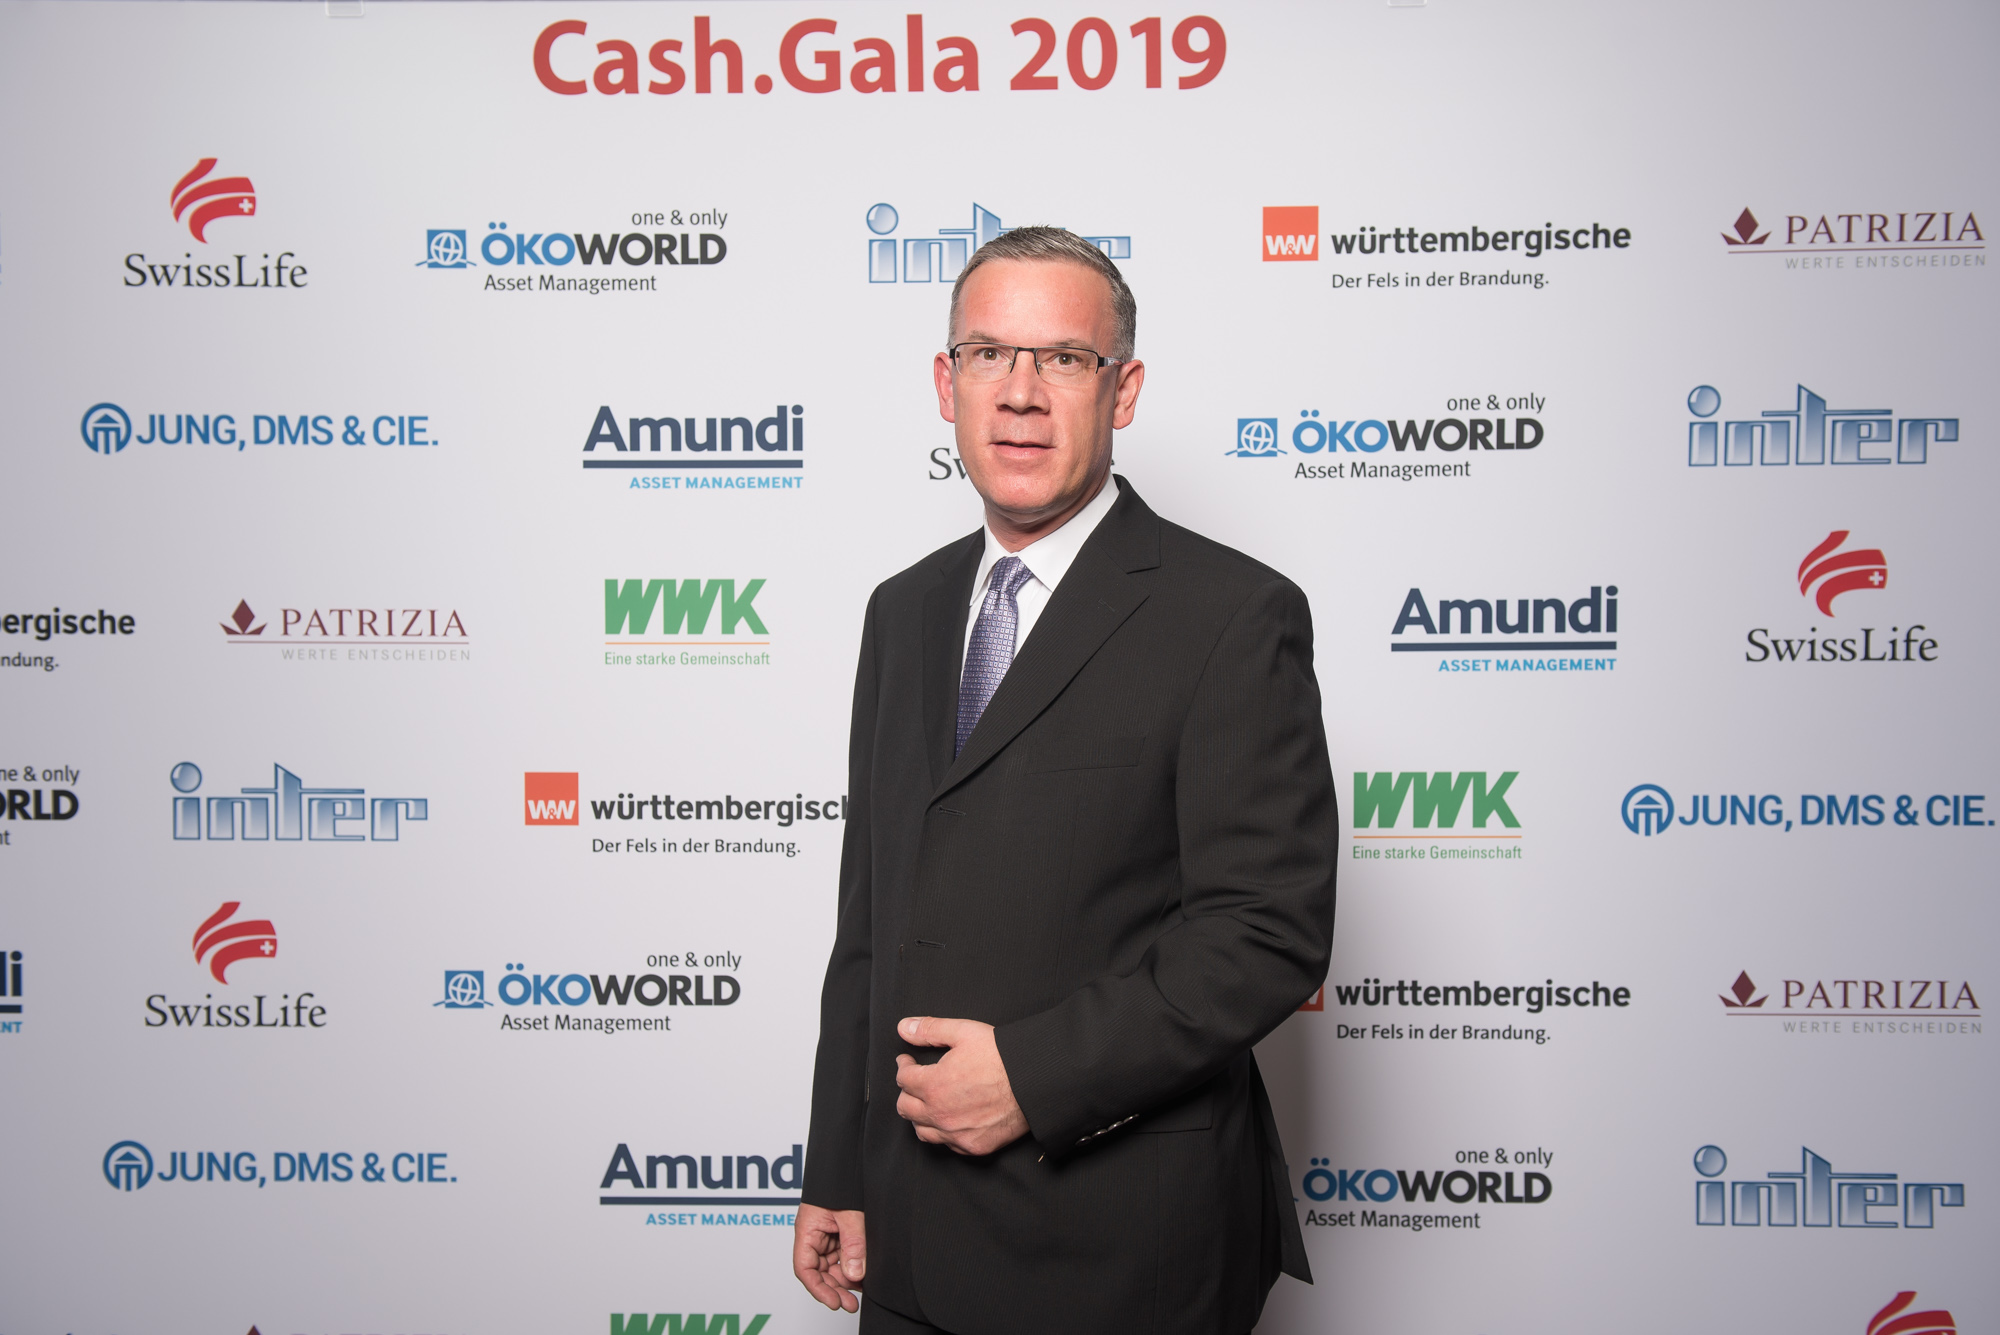 CashGala 2019 0037 AM DSC7051 in Cash.Gala 2019